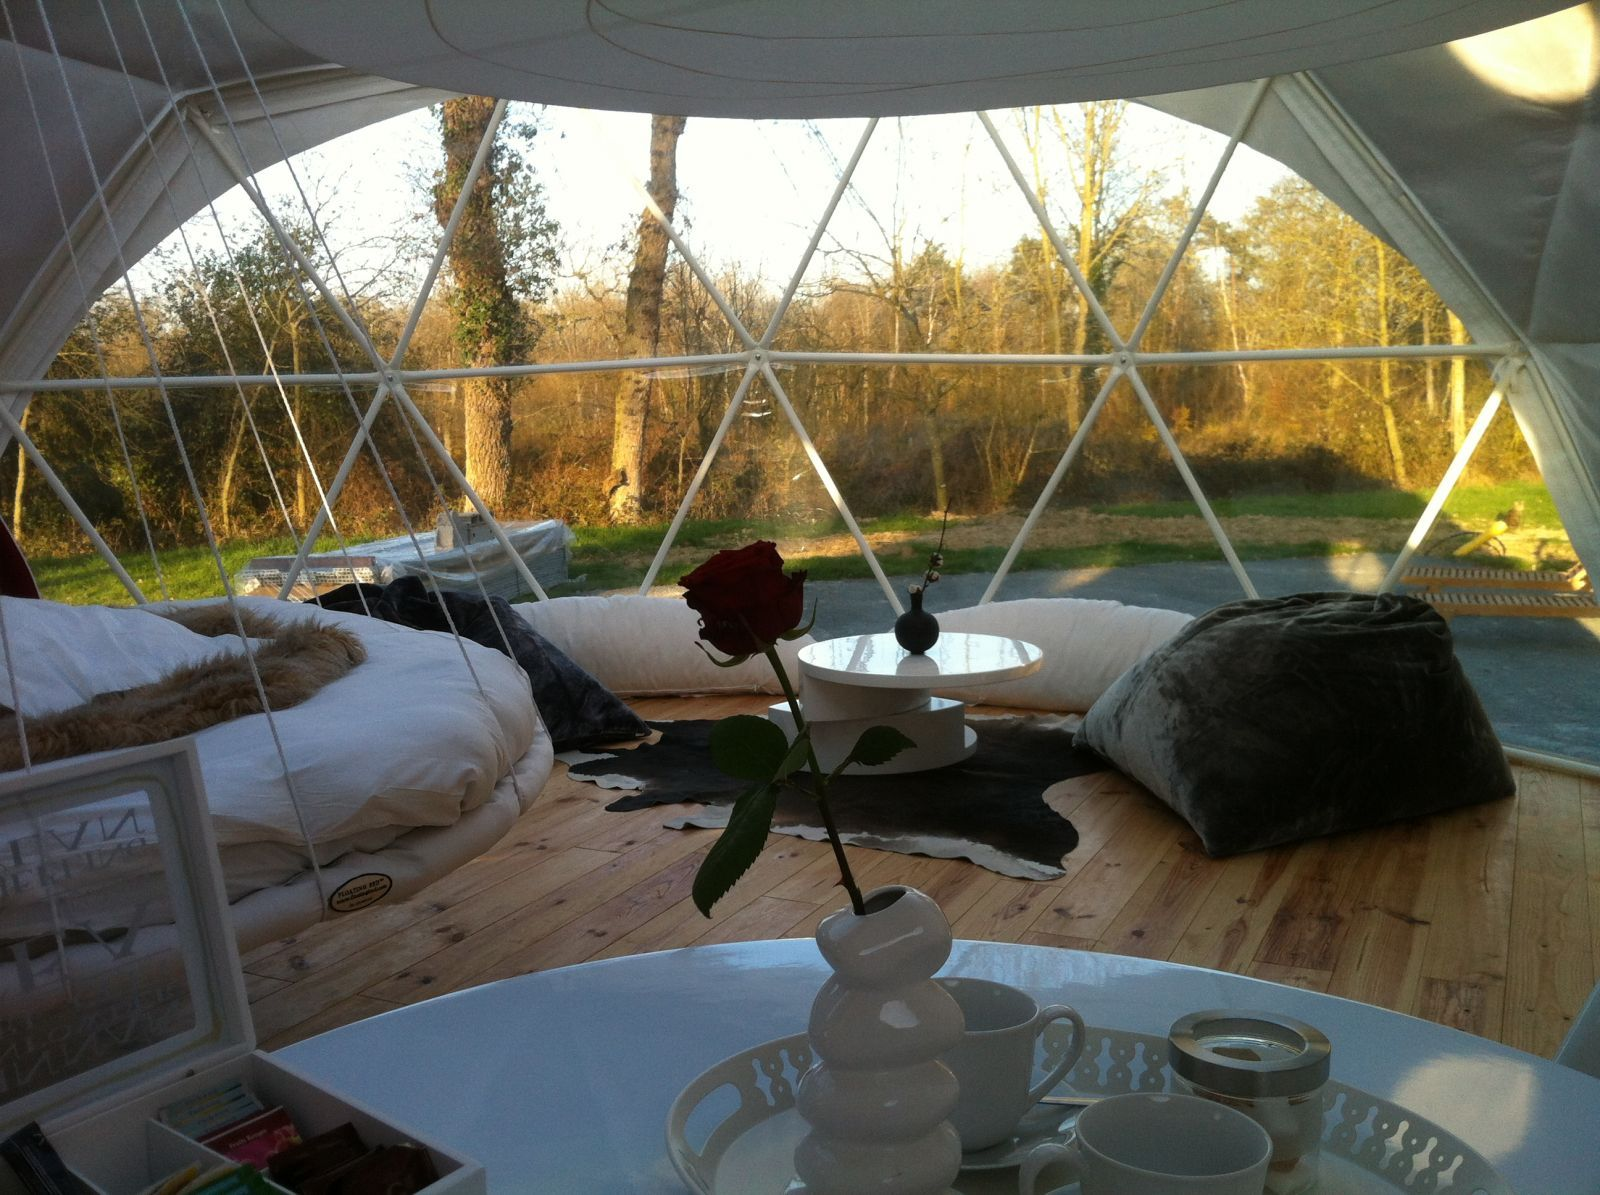 Gl&ing holidays : tent holidays in france - memphite.com